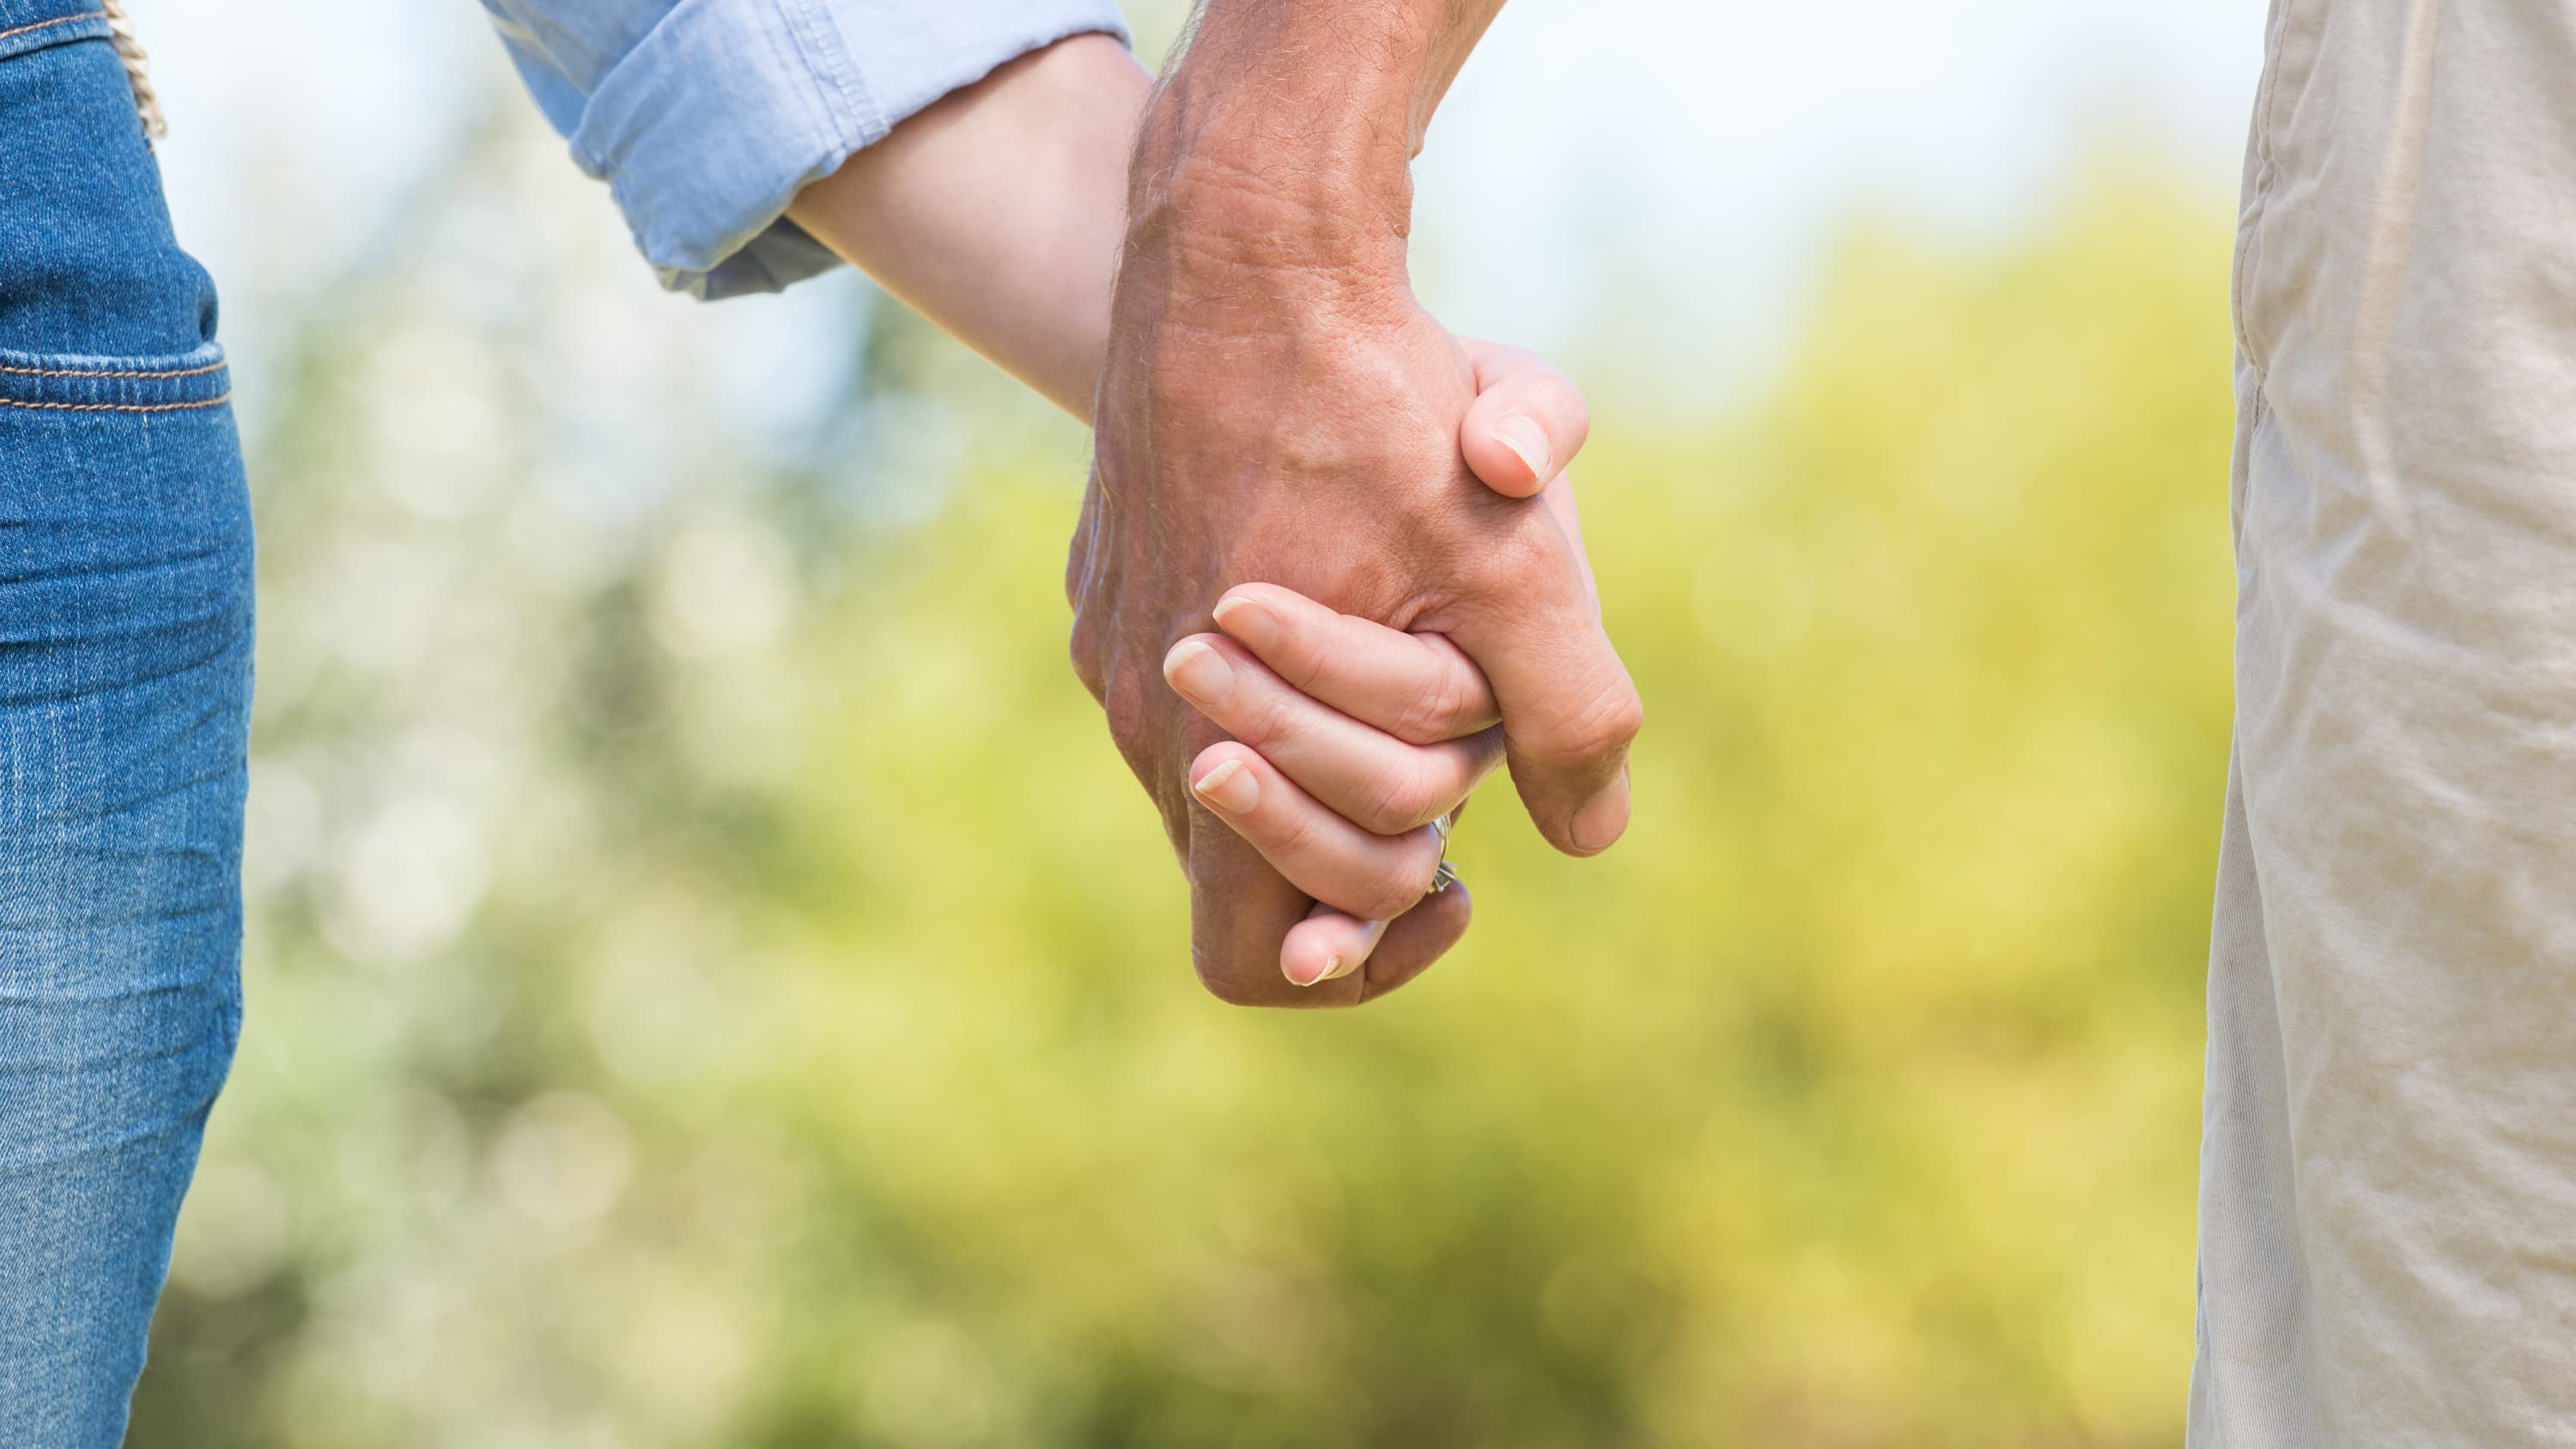 A close up image of two people holding hands, just the hands, in hopes of avoiding a sexually transmitted infection.